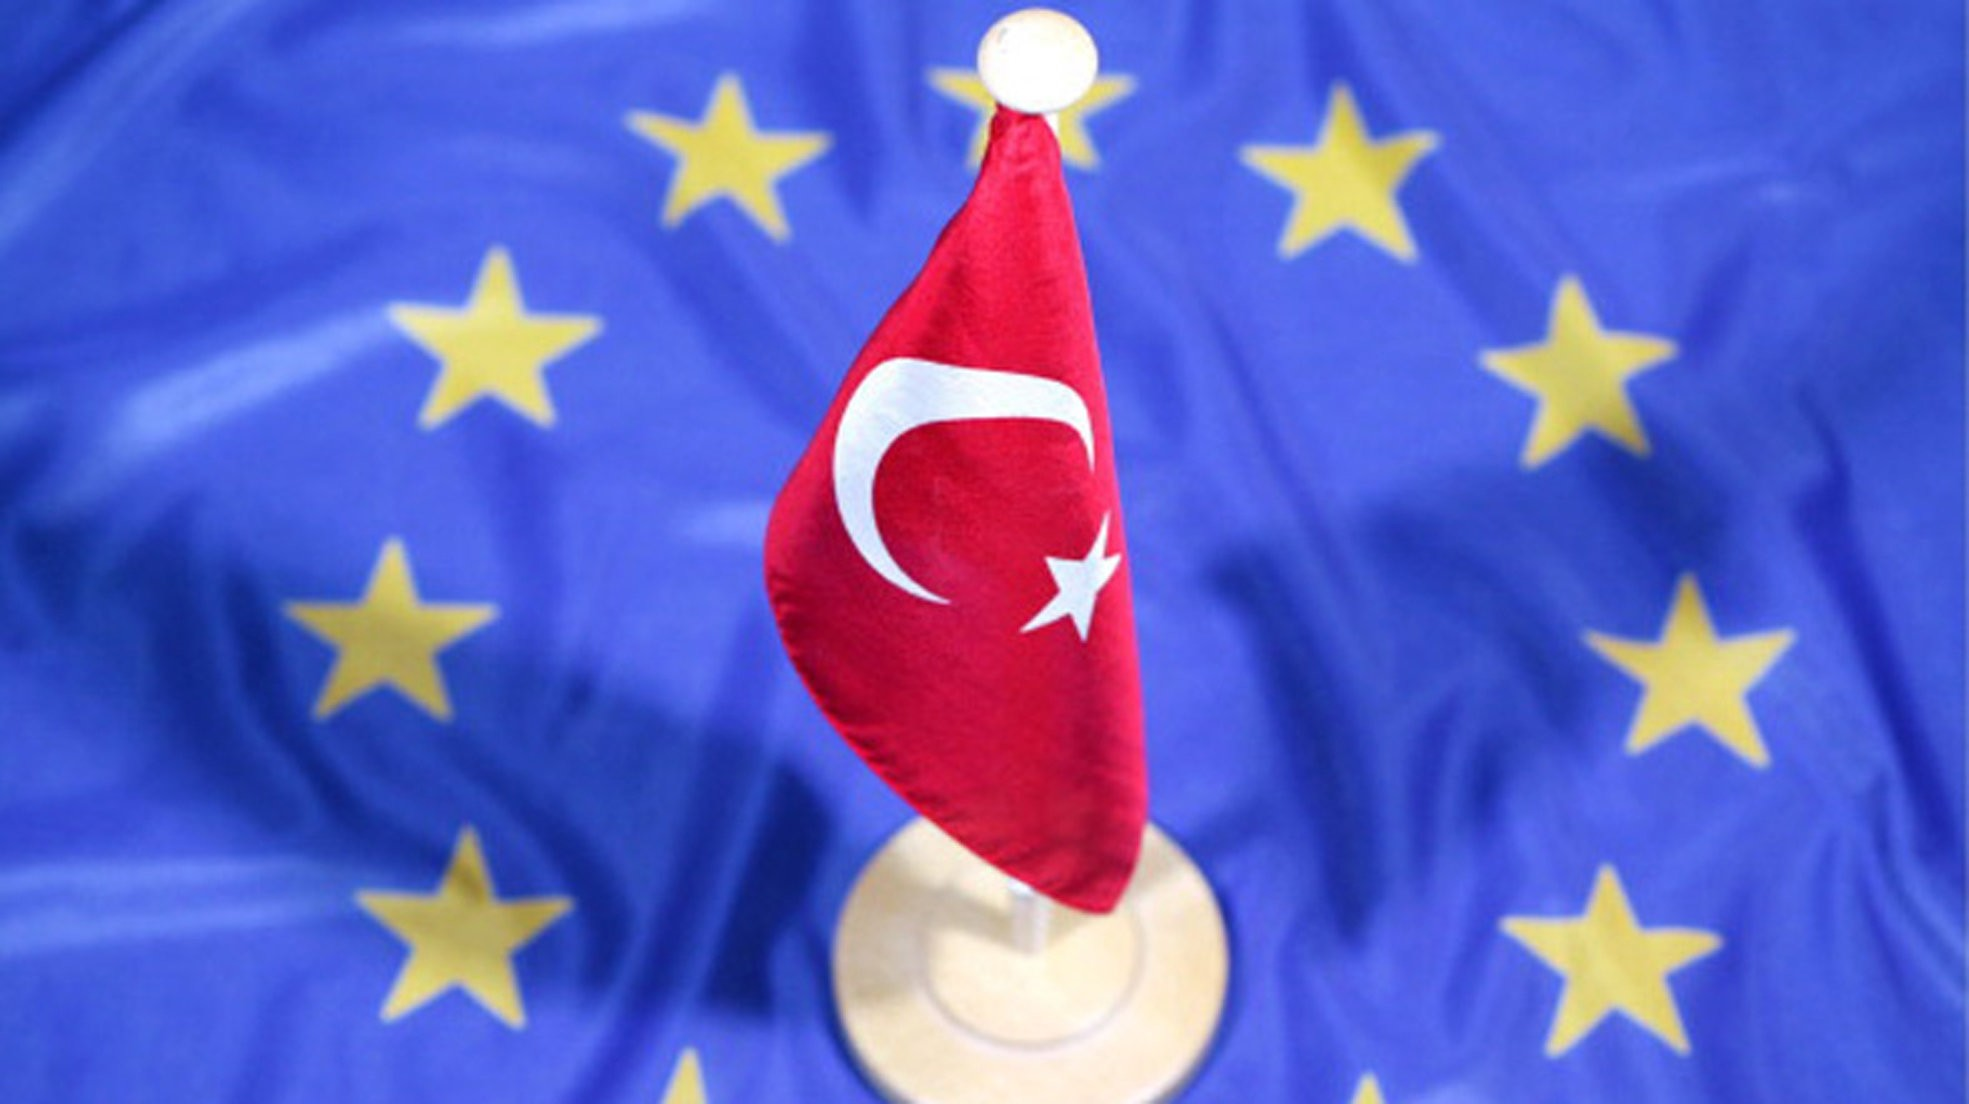 EU Affairs Minister u00d6mer u00c7elik said that the March 18 agreement foresees opening new chapters, visa liberalization and voluntary readmissions and not opening chapters would mean denying loyalty to the March 18 agreement.